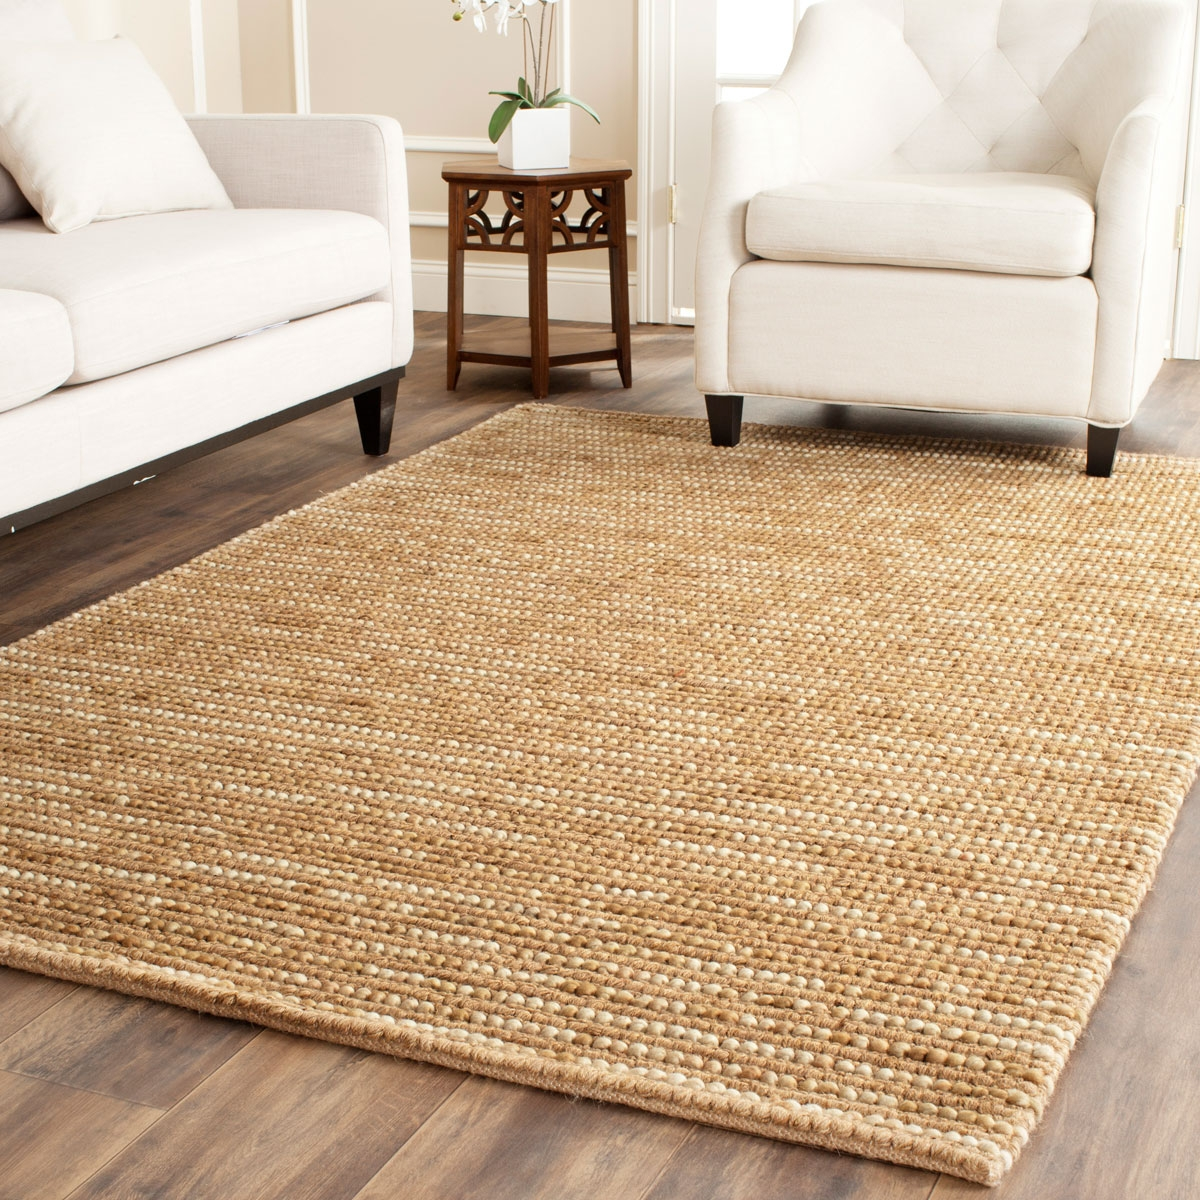 Rug Boh525f Bohemian Area Rugs Safavieh With Square Rugs 6×6 (Photo 15 of 15)